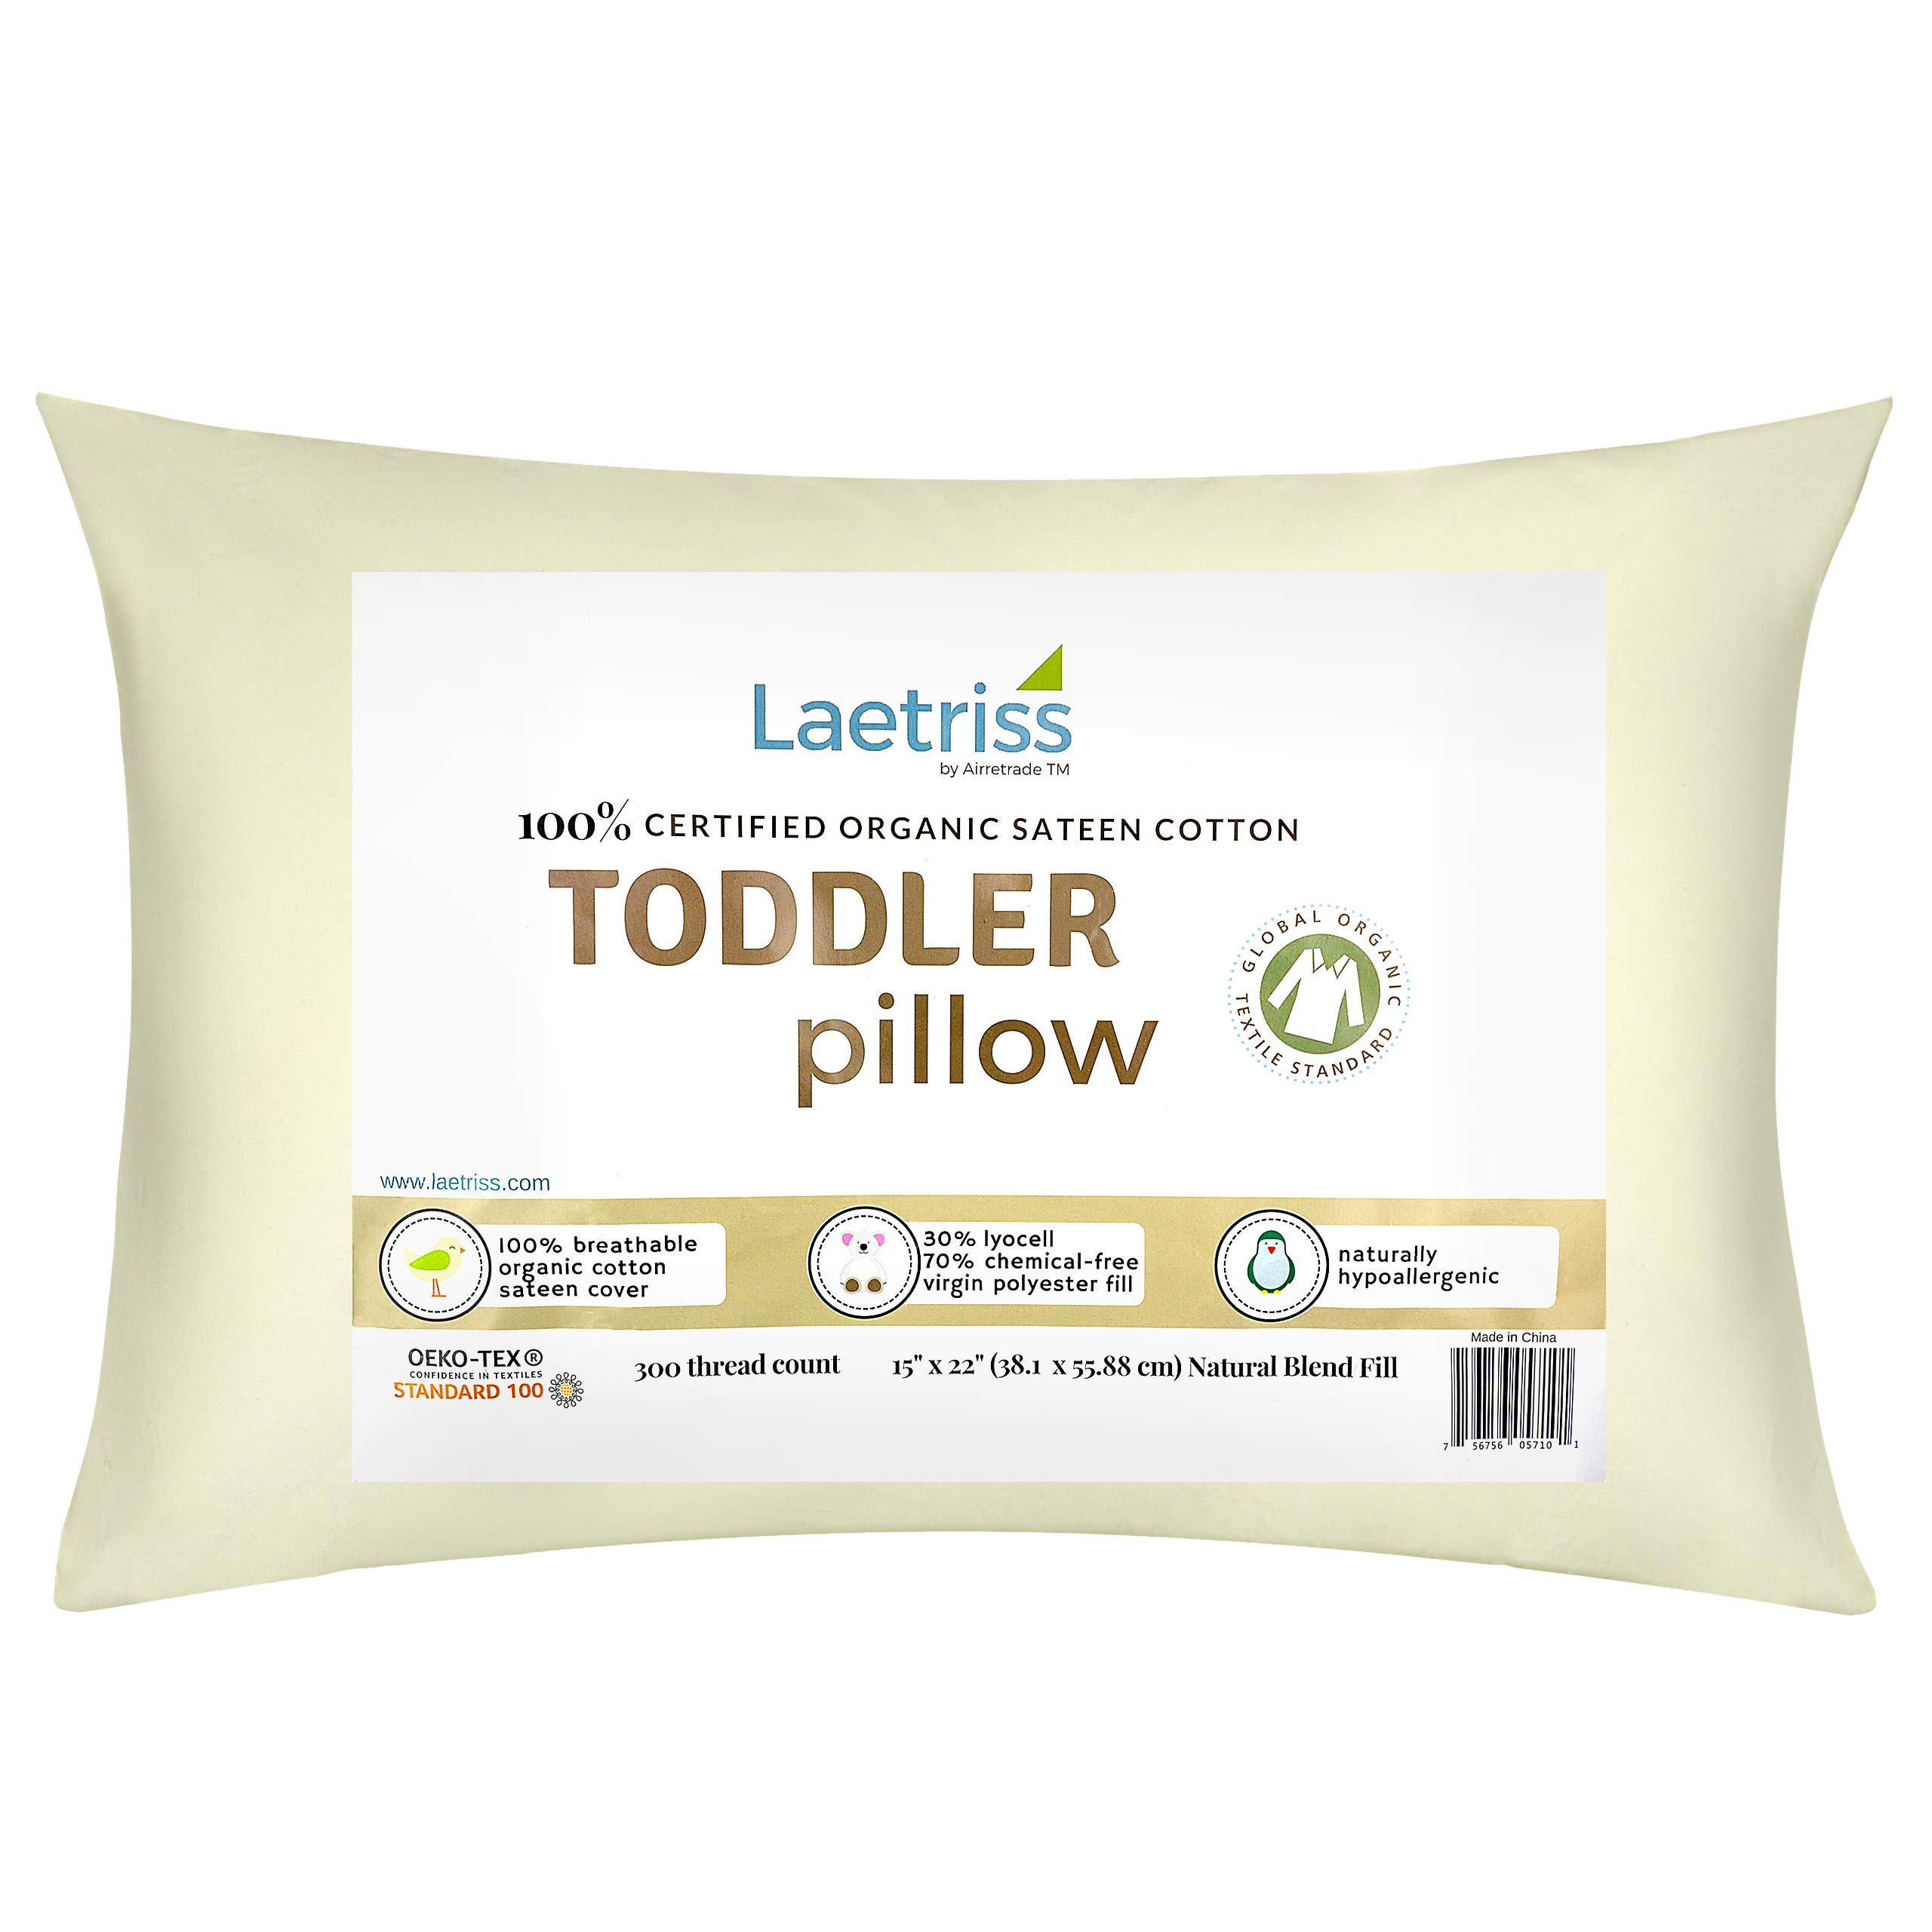 Laetriss Toddler Pillow Organic Cotton with Pillowcase | Hypoallergenic and Soft Baby Pillows and Case for Boy and Girl Toddlers | Small Child's Sleeping Headrest Set Size 15'' X 22'' | 300 Thread Count by Laetriss